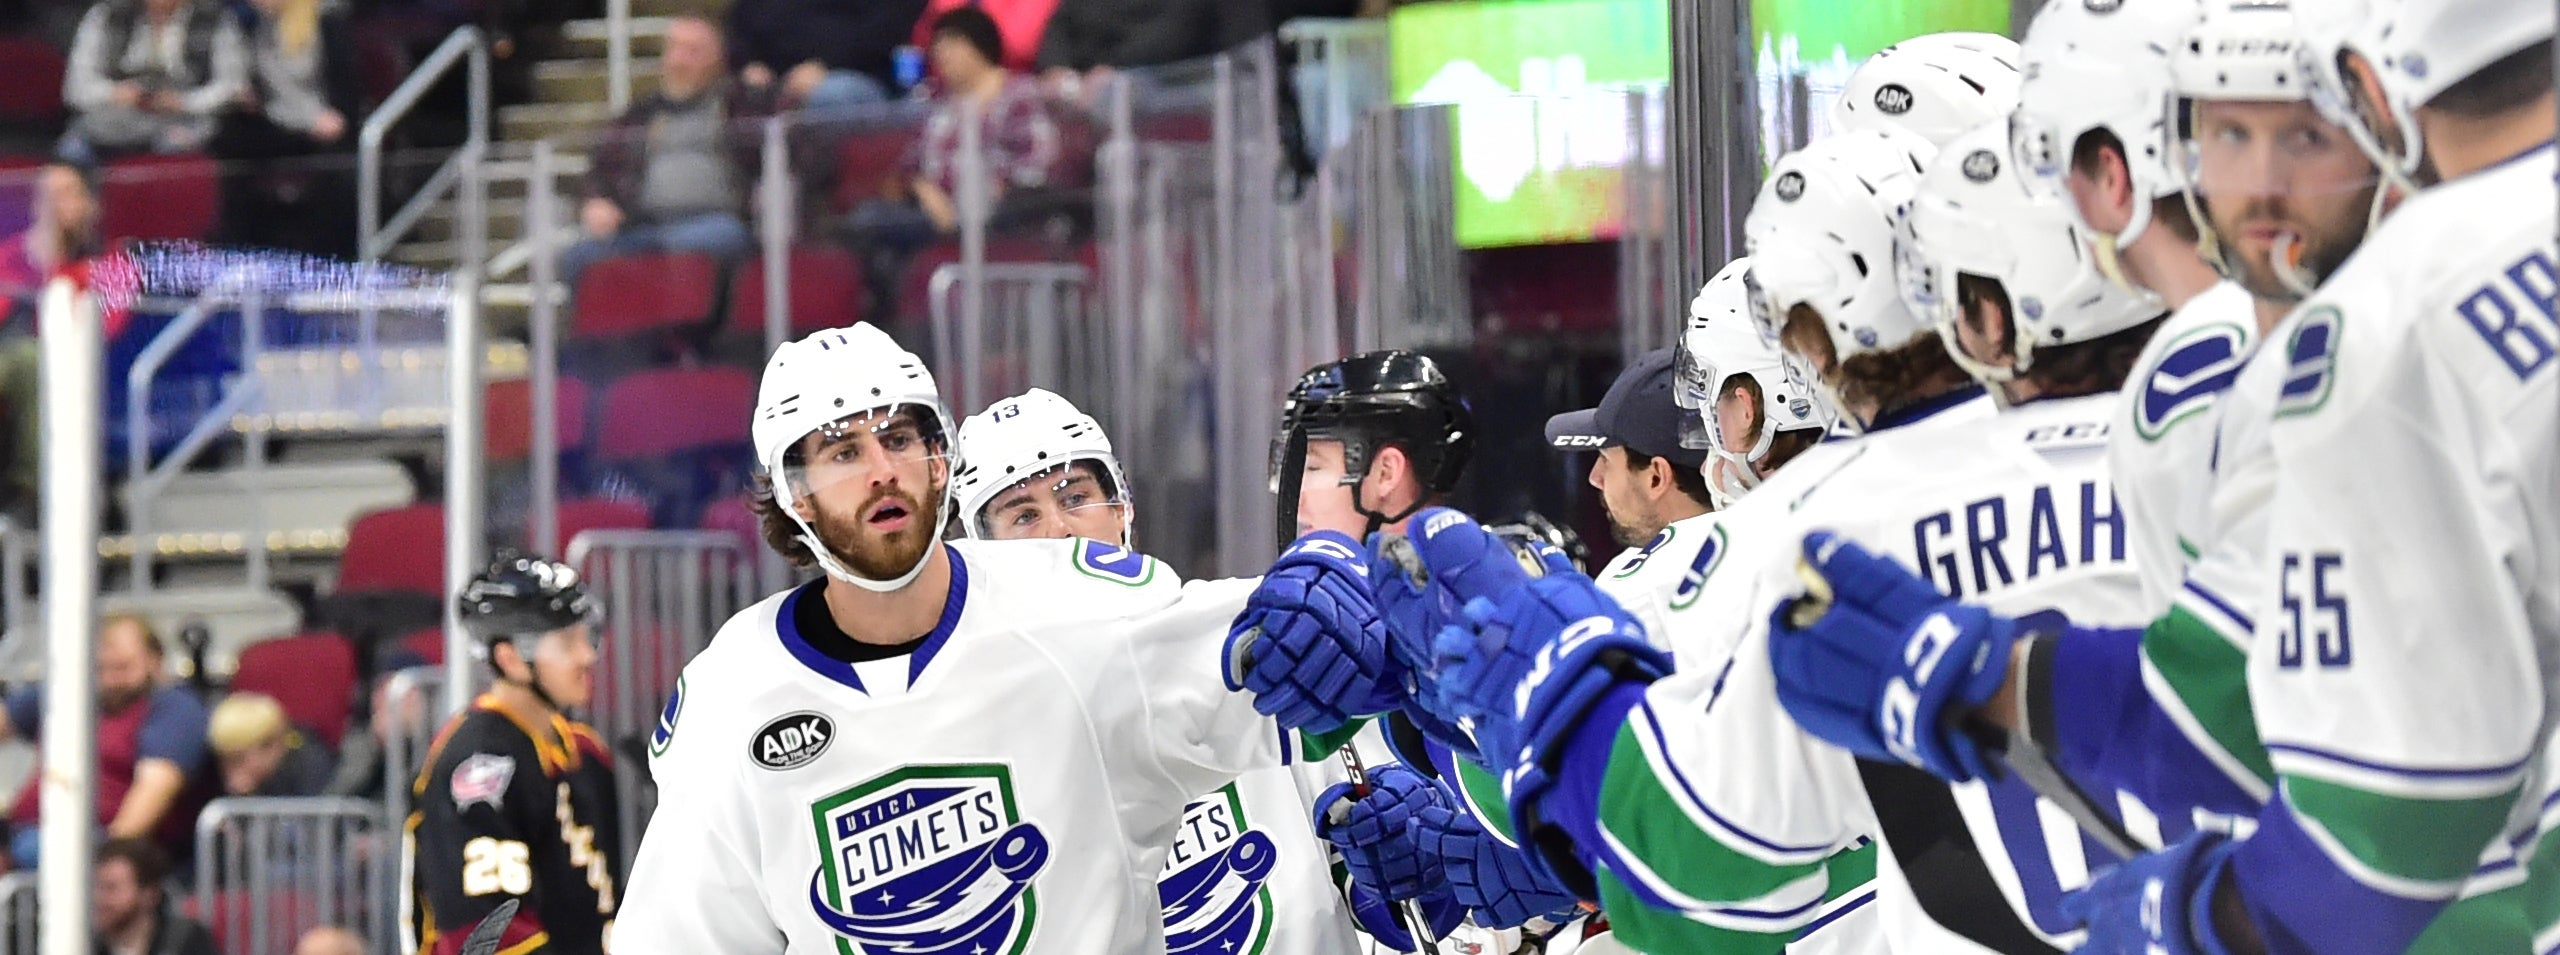 COMETS WIN FOURTH STRAIGHT IN DECISIVE FASHION